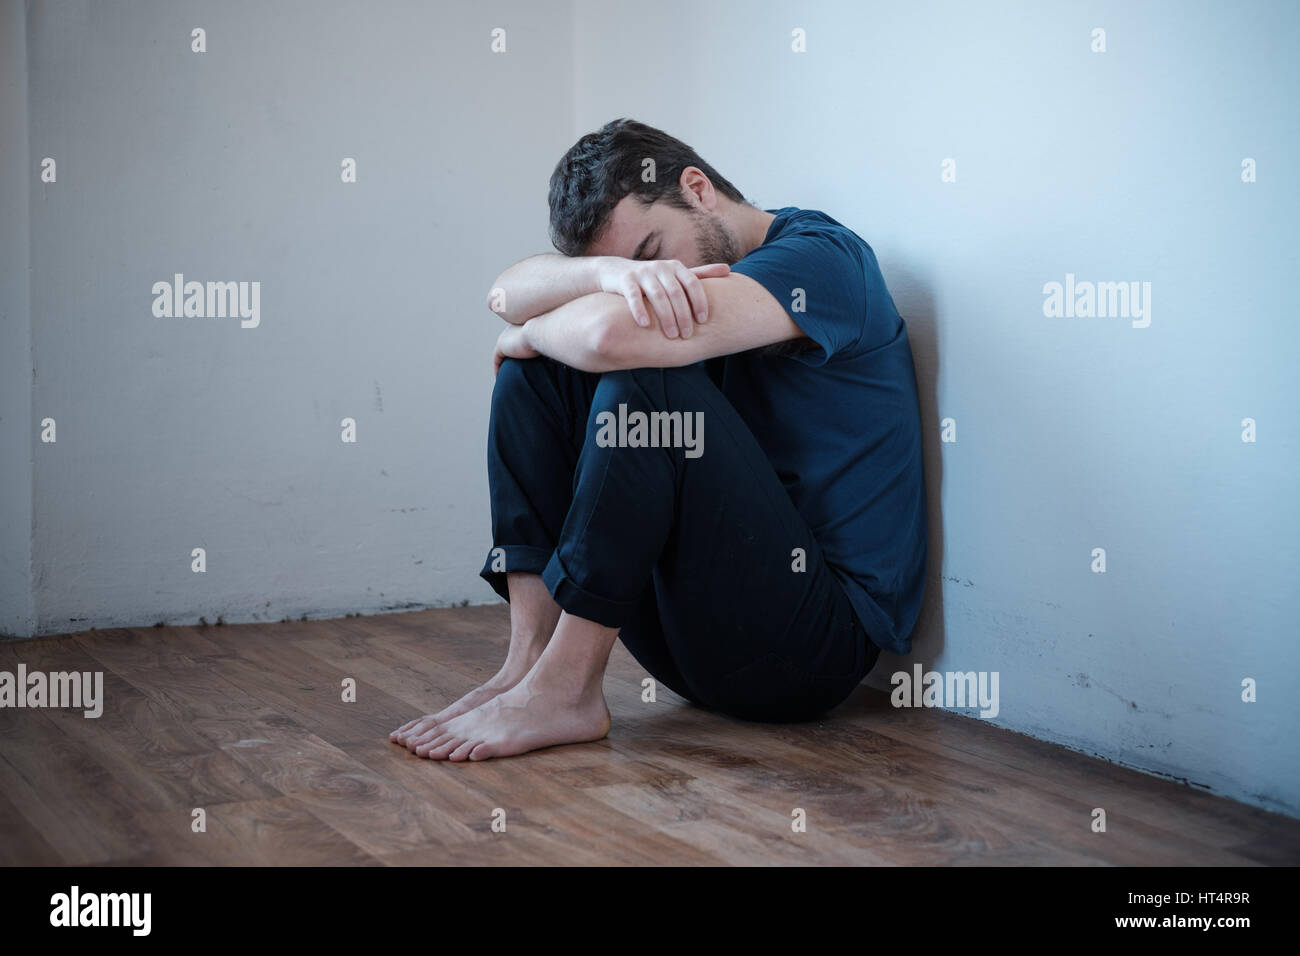 Desperate man in trouble feeling alone and depressed - Stock Image